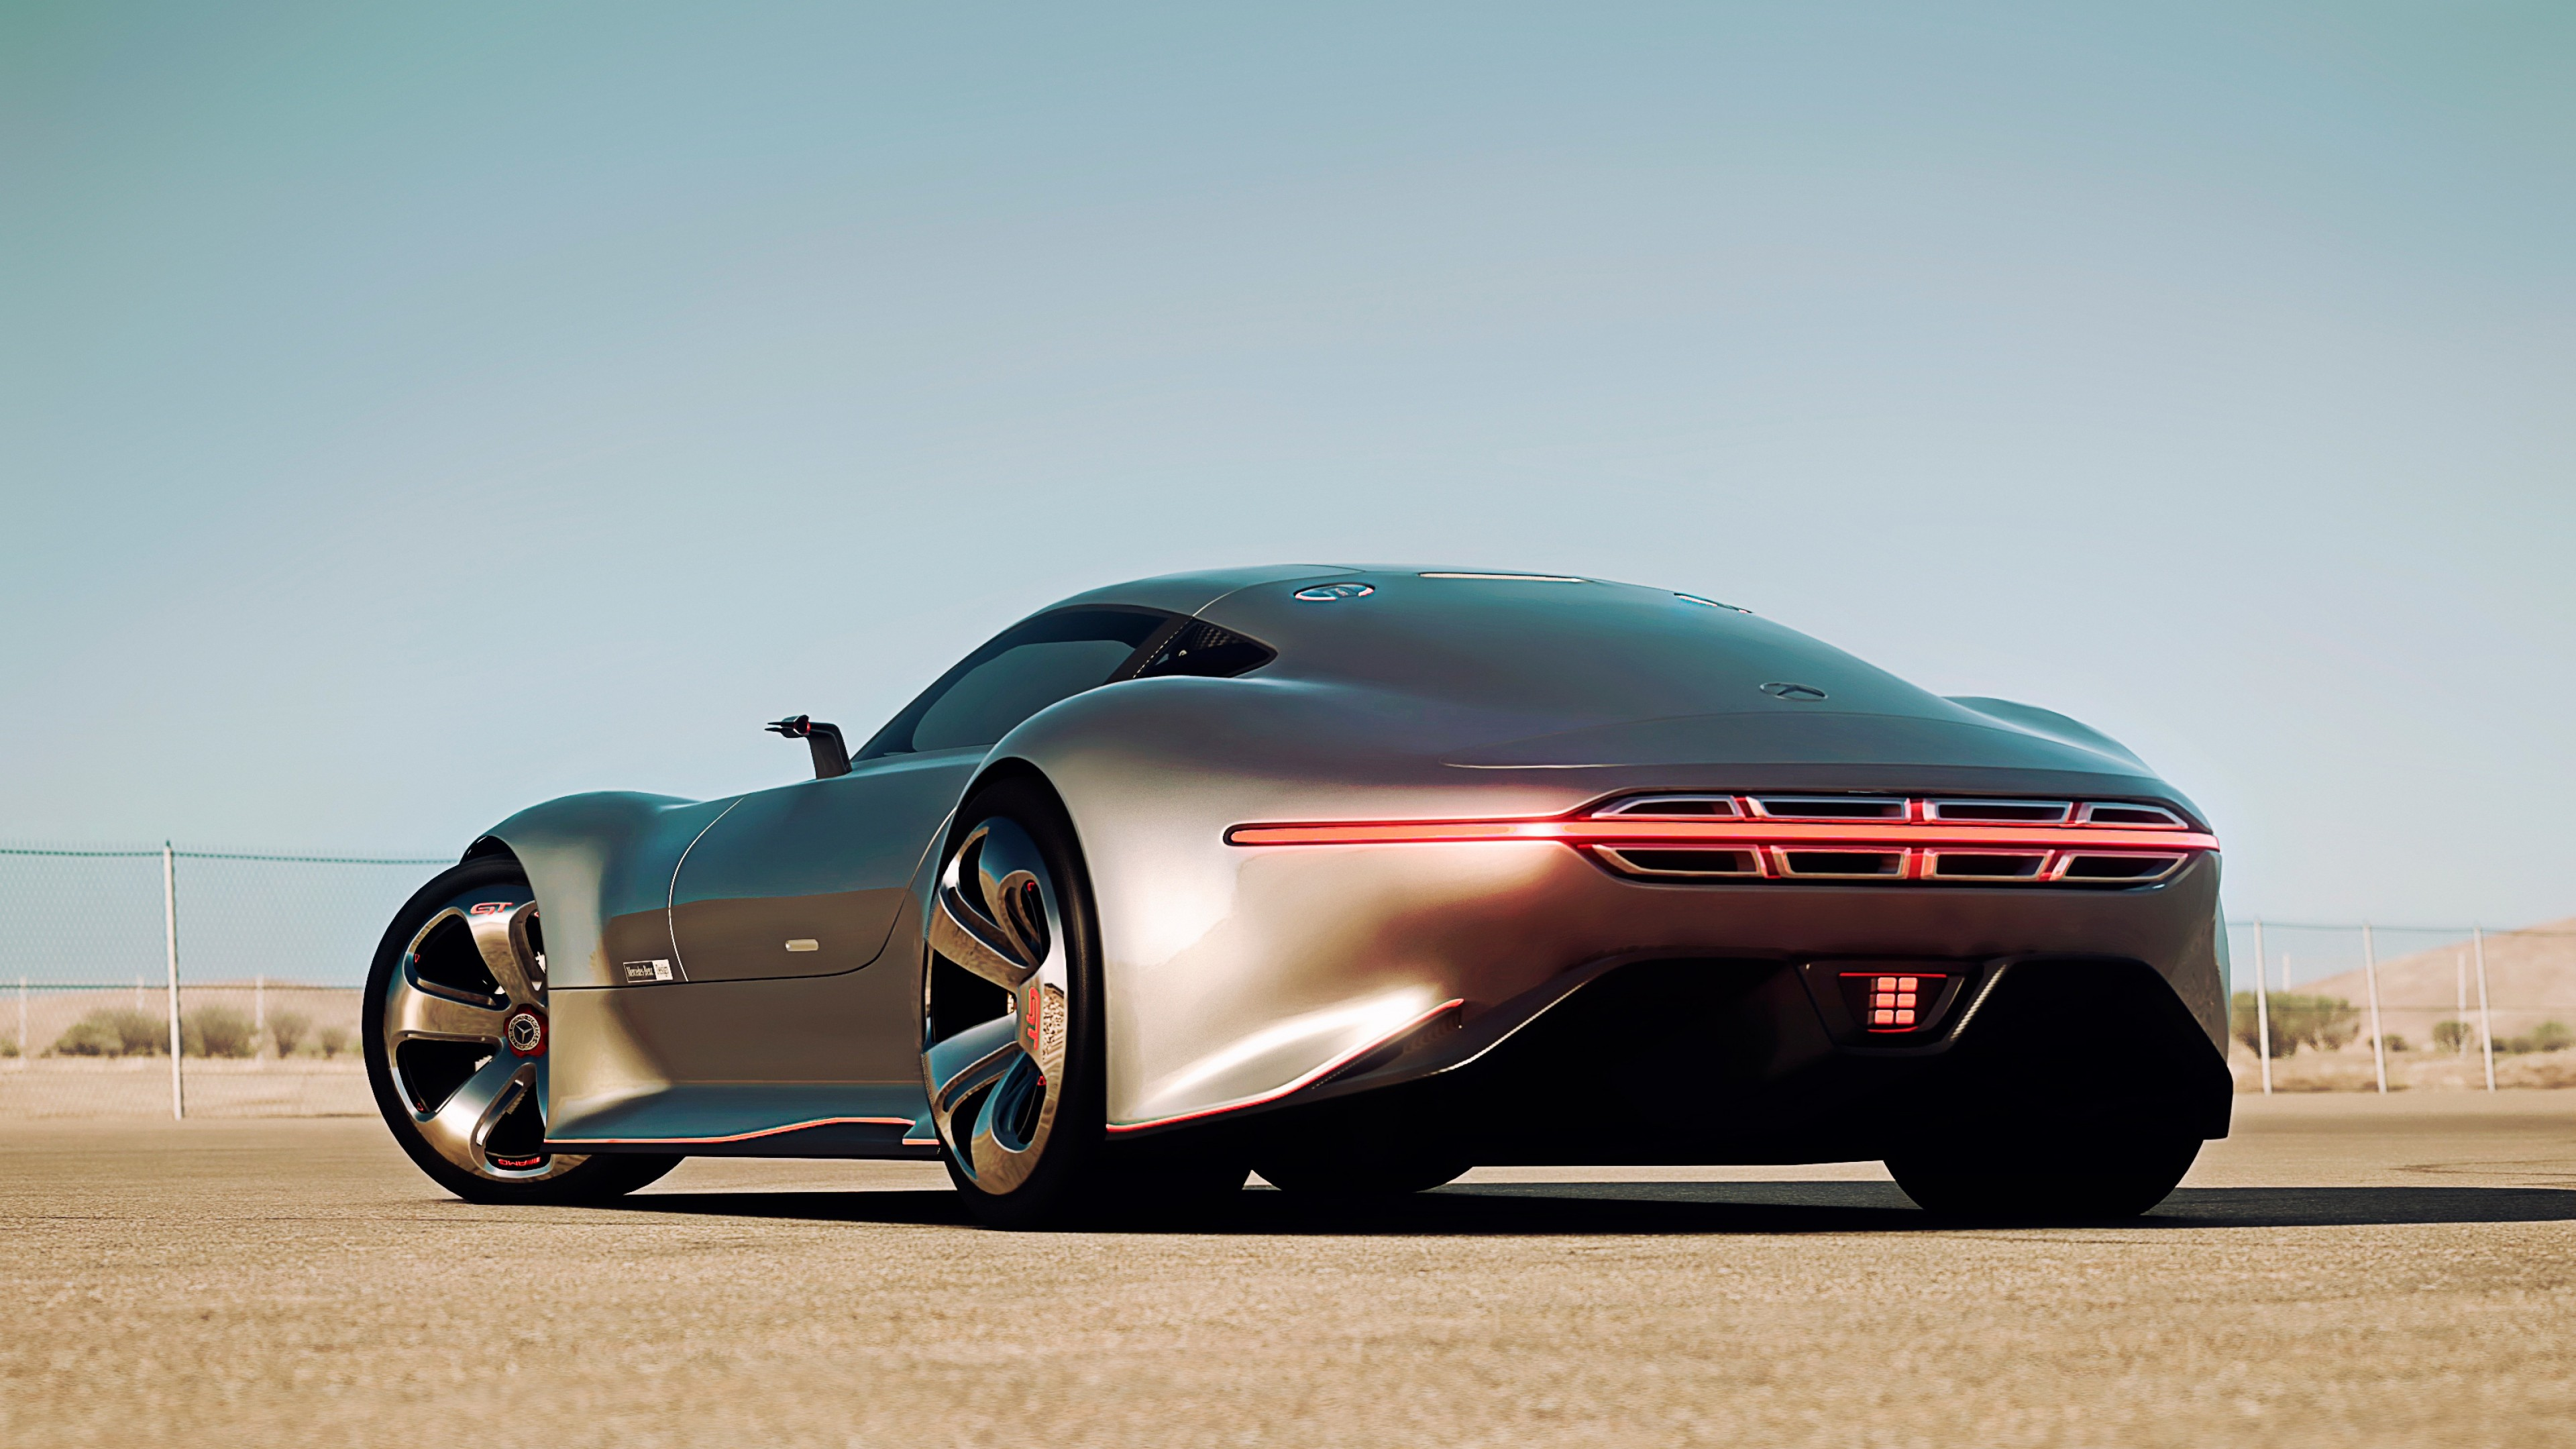 wallpaper mercedes benz amg vision supercar gran turismo